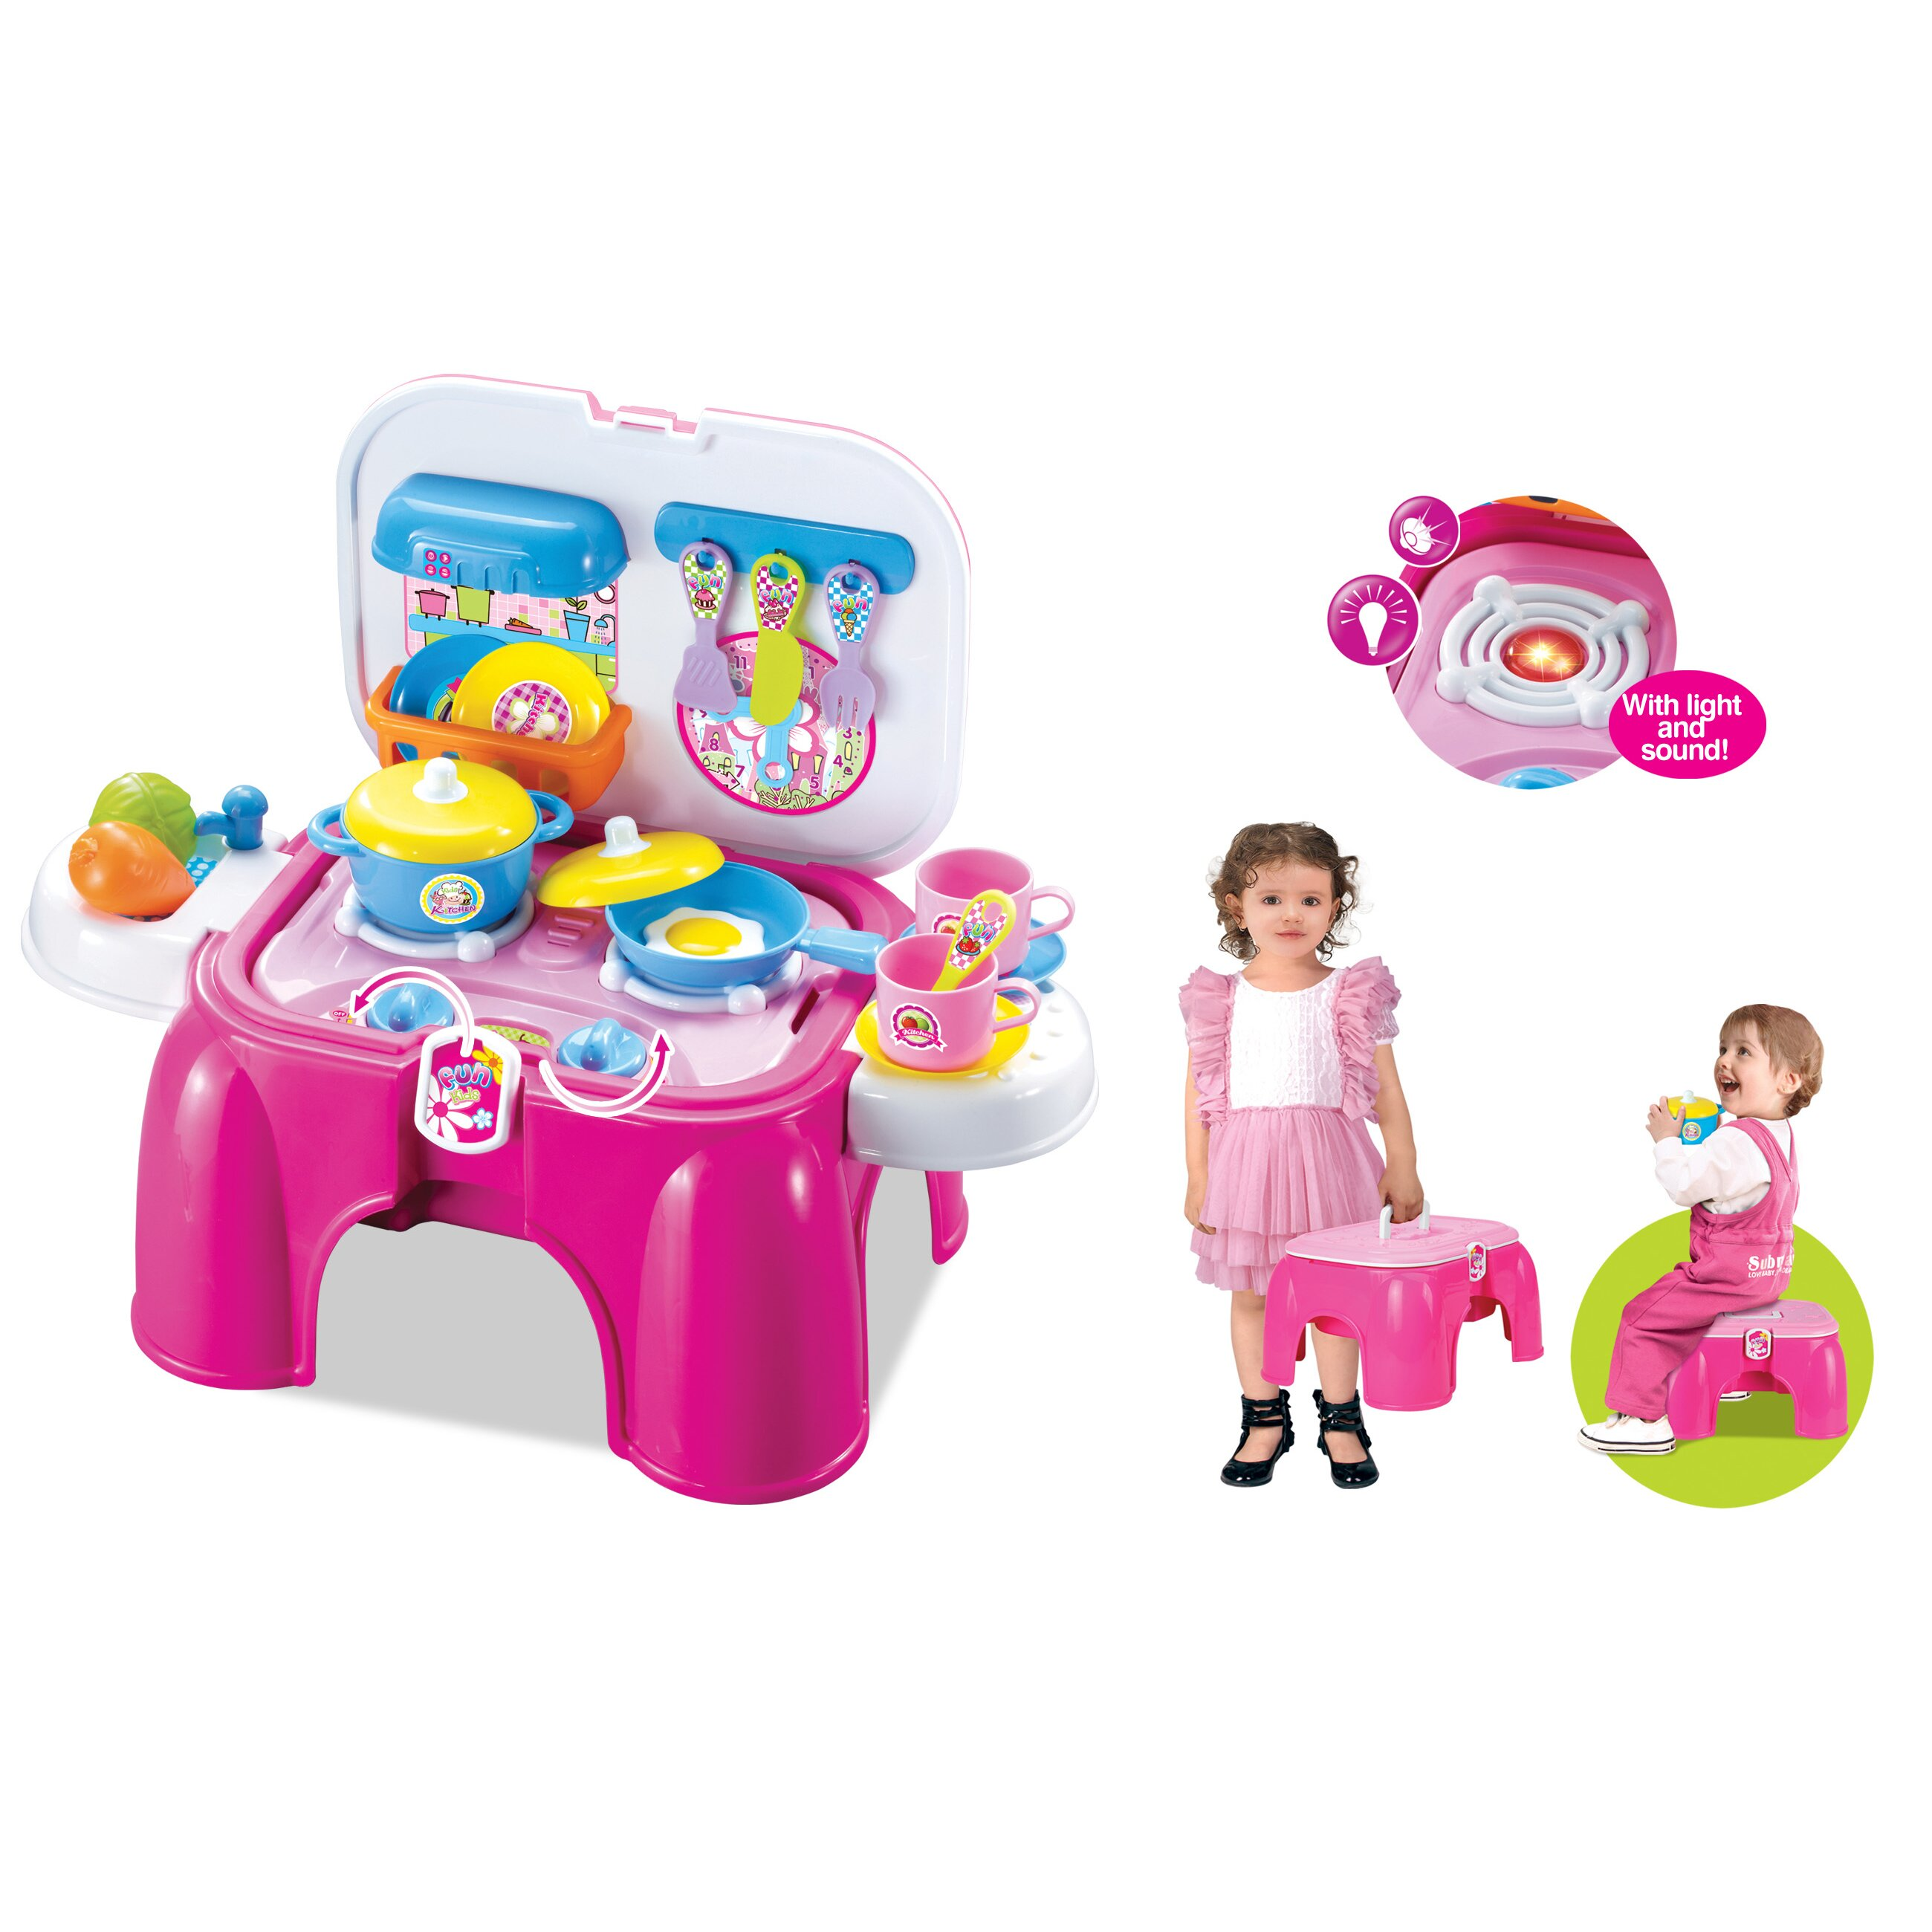 Berry toys my first portable play and carry kitchen bench for Kitchen set portable